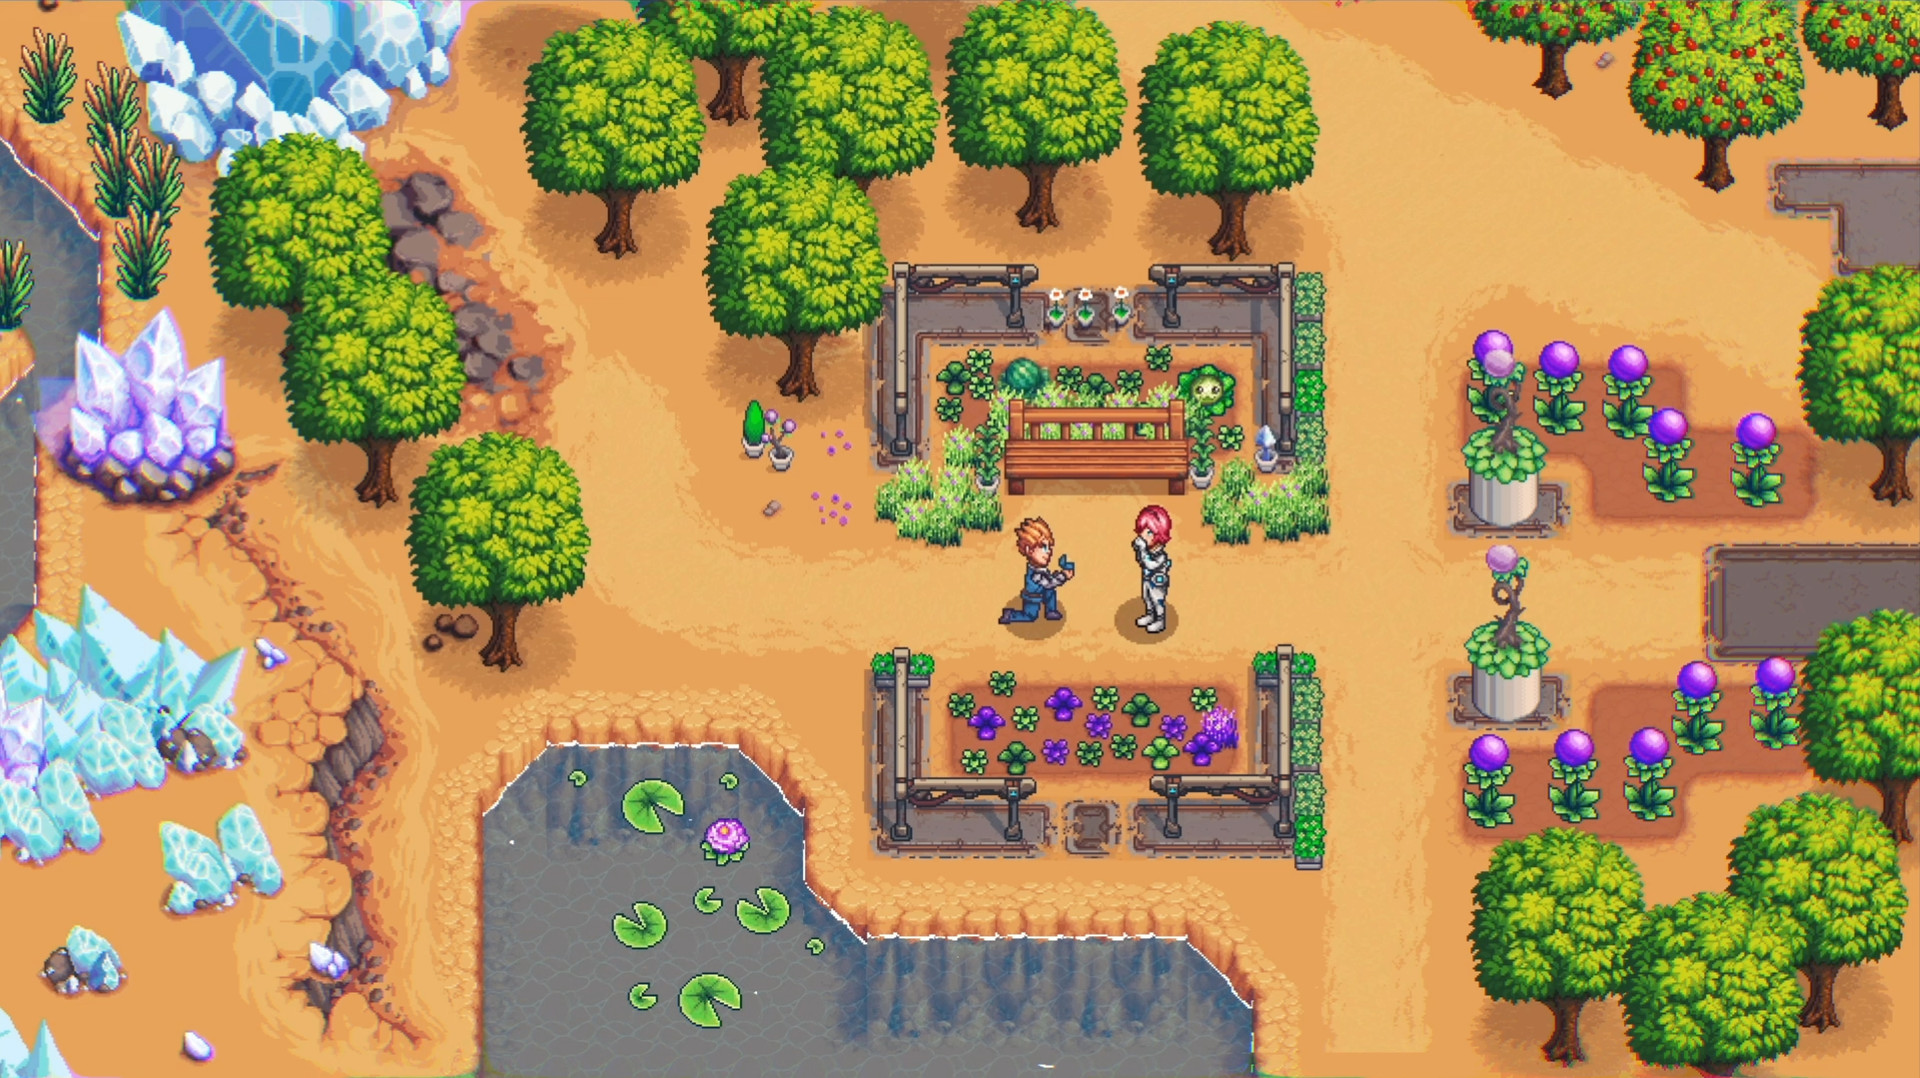 An image from video game One Lonely Outpost.